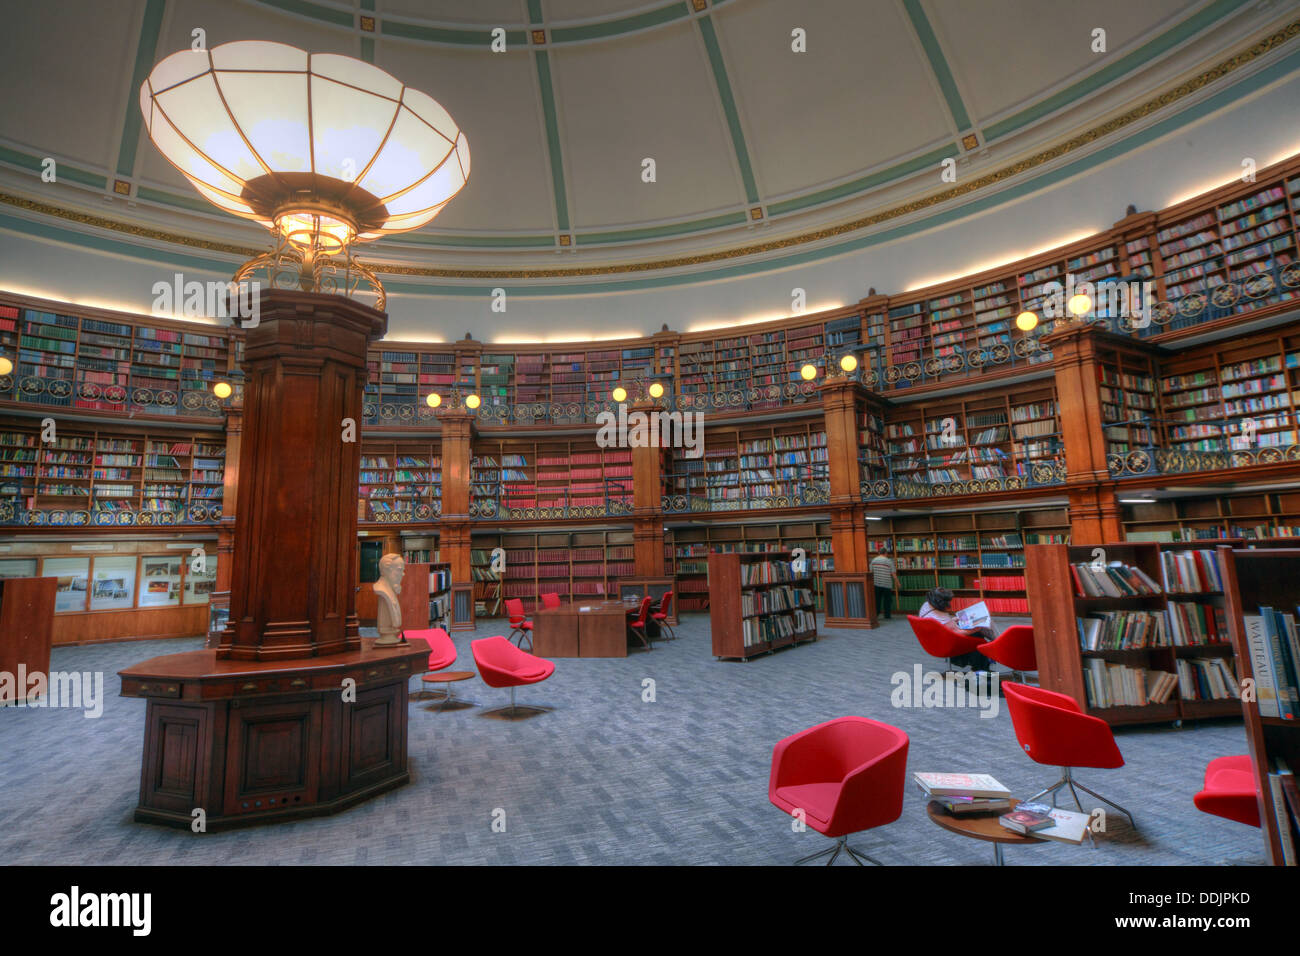 historic,history,book,books,Merseyside,listed,building,buildings,reading,room,grade,II,grade2,gradeII,William,Brown,Street,Cornelius,Sherlock,interior,inside,shelves,shelf,light,lighting,ceiling,dome,G,great,Britain,Architecture,design,round,hall,city,centre,circular,hall,light,lighting,ceiling,red,gotonysmith,Hugh,Frederick,British,England,English,librarian,librarians,L3,8EW,L38EW,Buy Pictures of,Buy Images Of